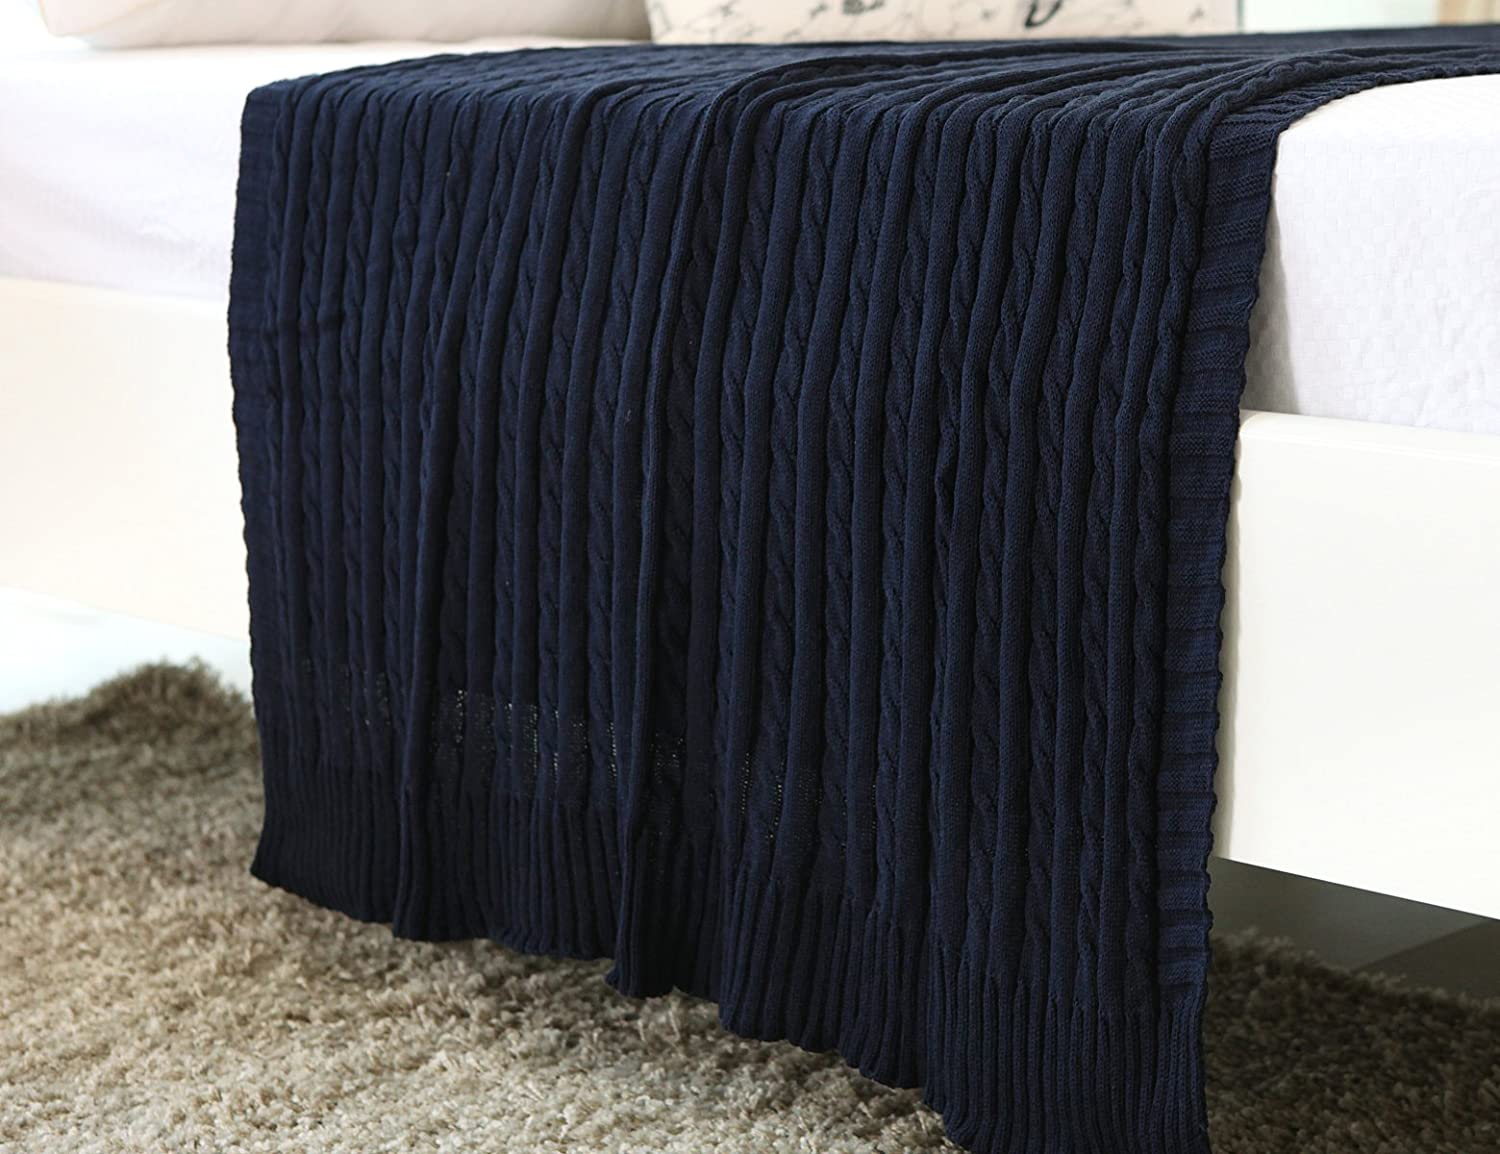 100% All Cotton Knit Throw for Sofa Classic Cable Pattern, 43x70 Inches, Lightweight Ideal for All Year Round Use, Navy